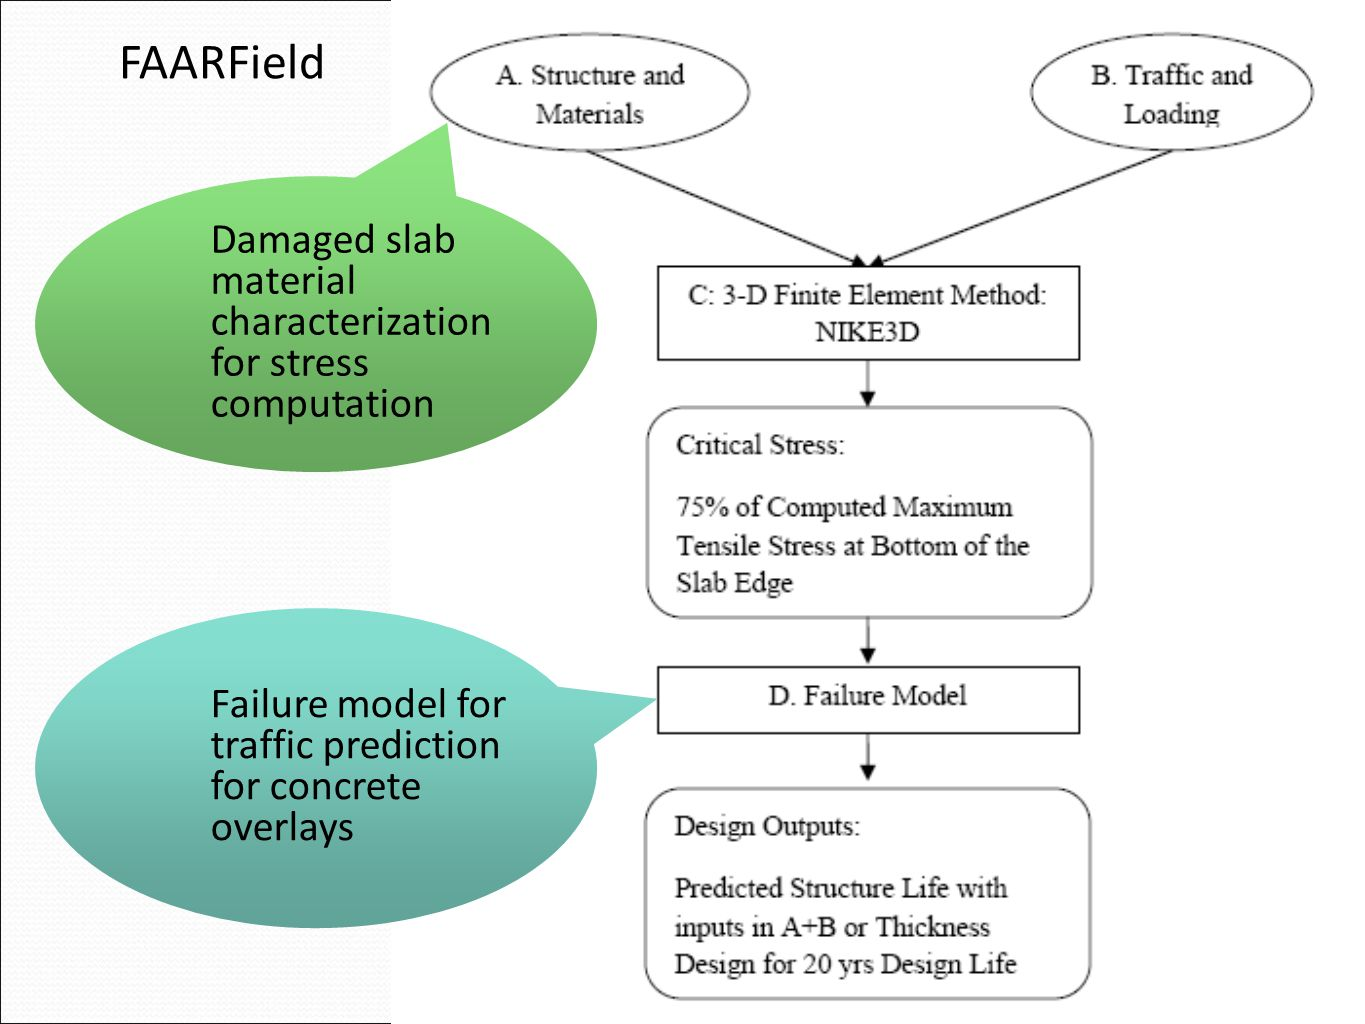 Damaged slab material characterization for stress computation Failure model for traffic prediction for concrete overlays FAARField